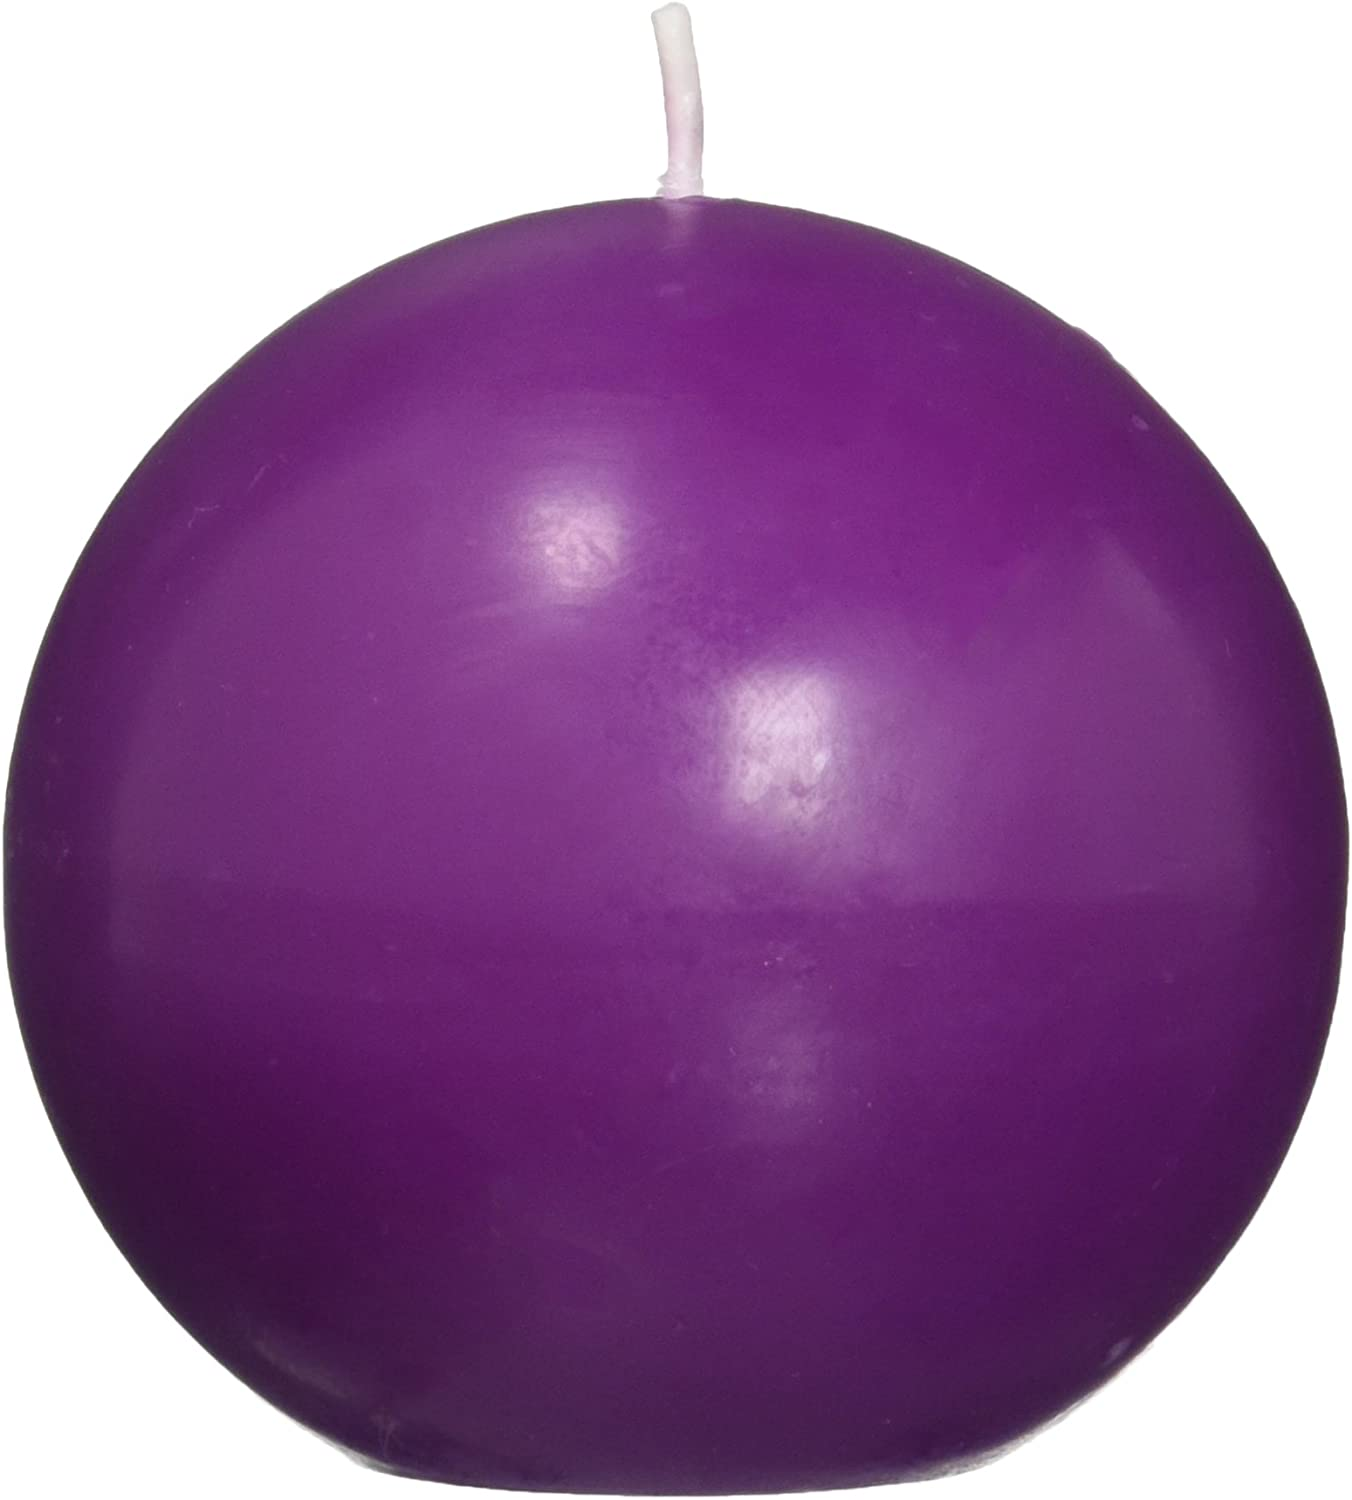 Zest Candle 6-Piece Ball Japan's largest assortment Candles El Paso Mall Purple 3-Inch